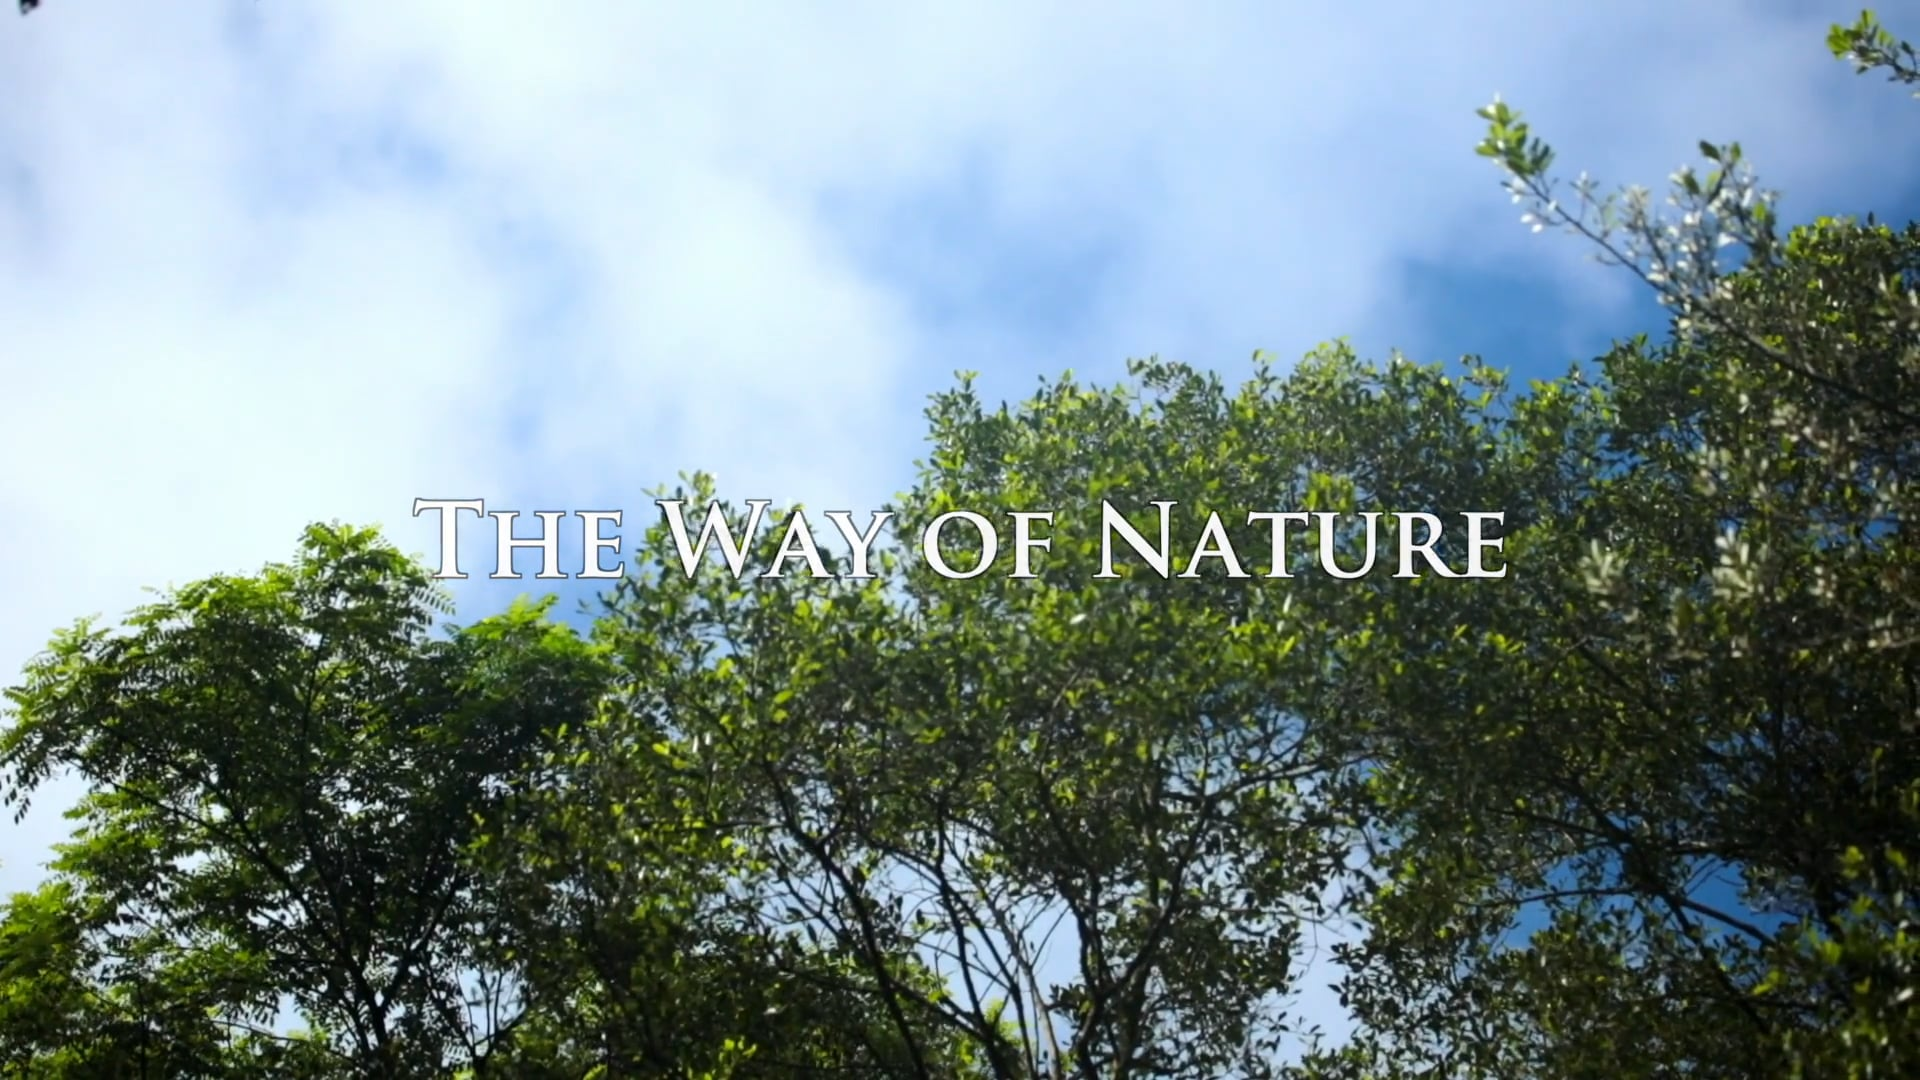 The Way of Nature - Promo